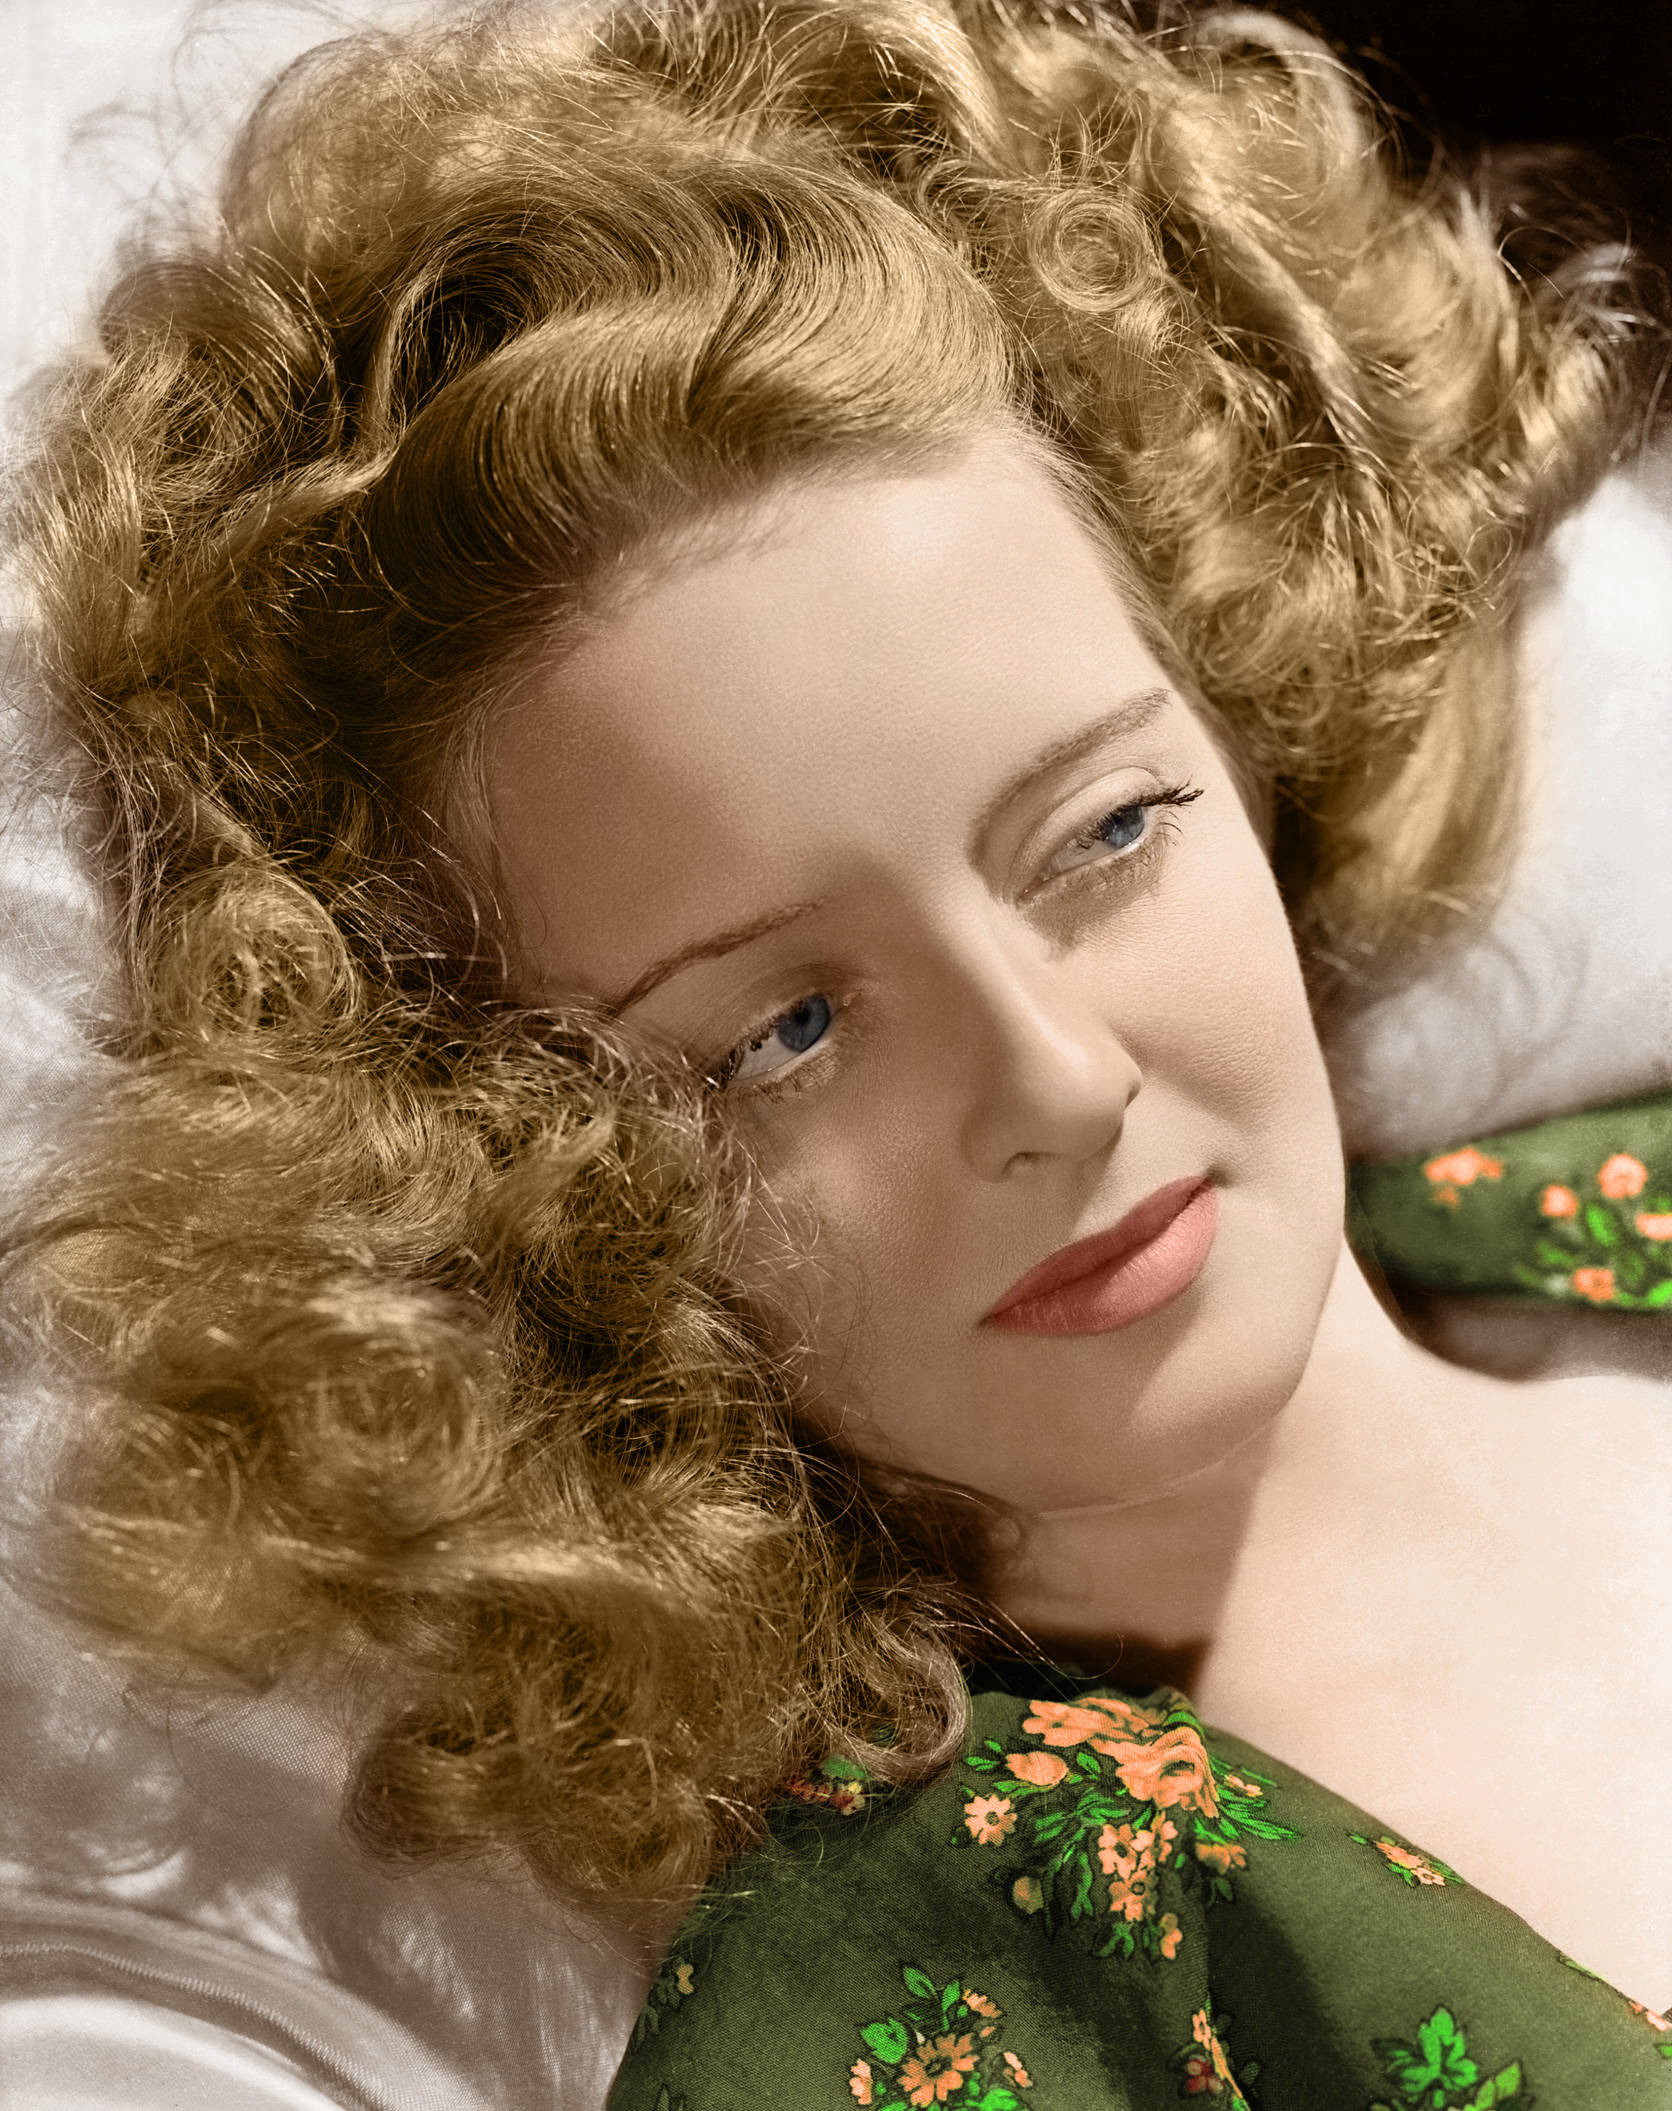 bette-davis-height-weight-age-bra-size-affairs-body-stats-bollywoodfox-2